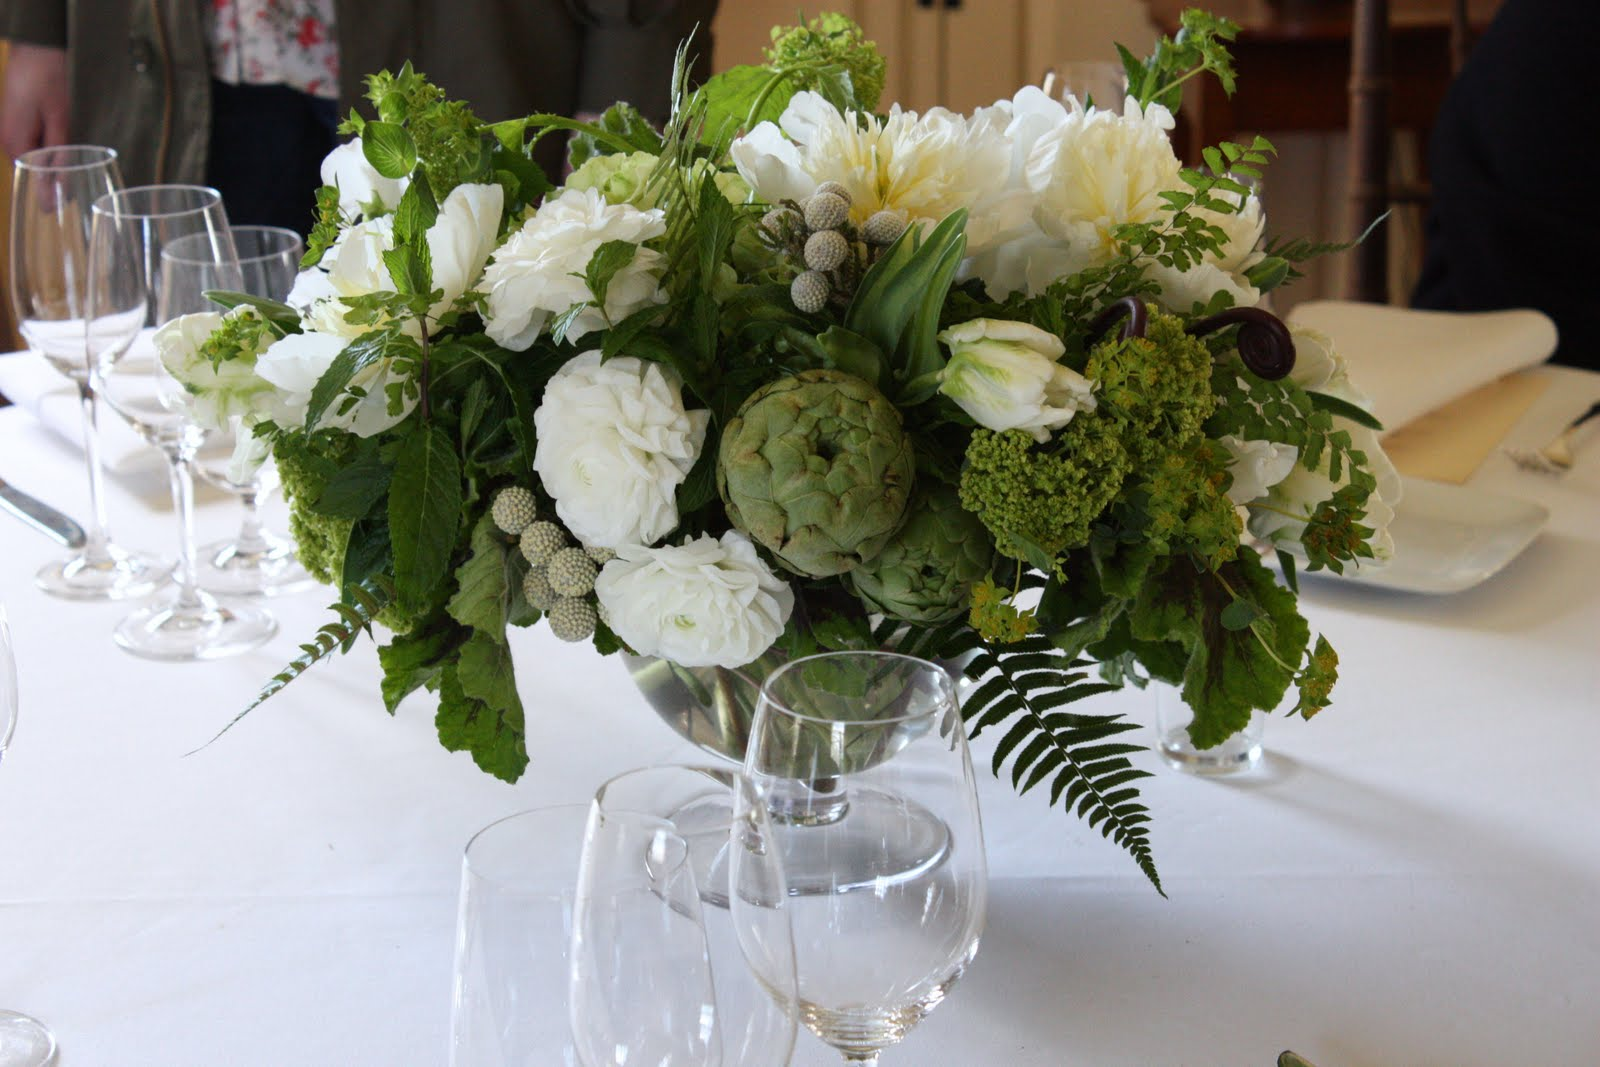 Green And White Centerpieces : Green and white centerpieces blush floral design